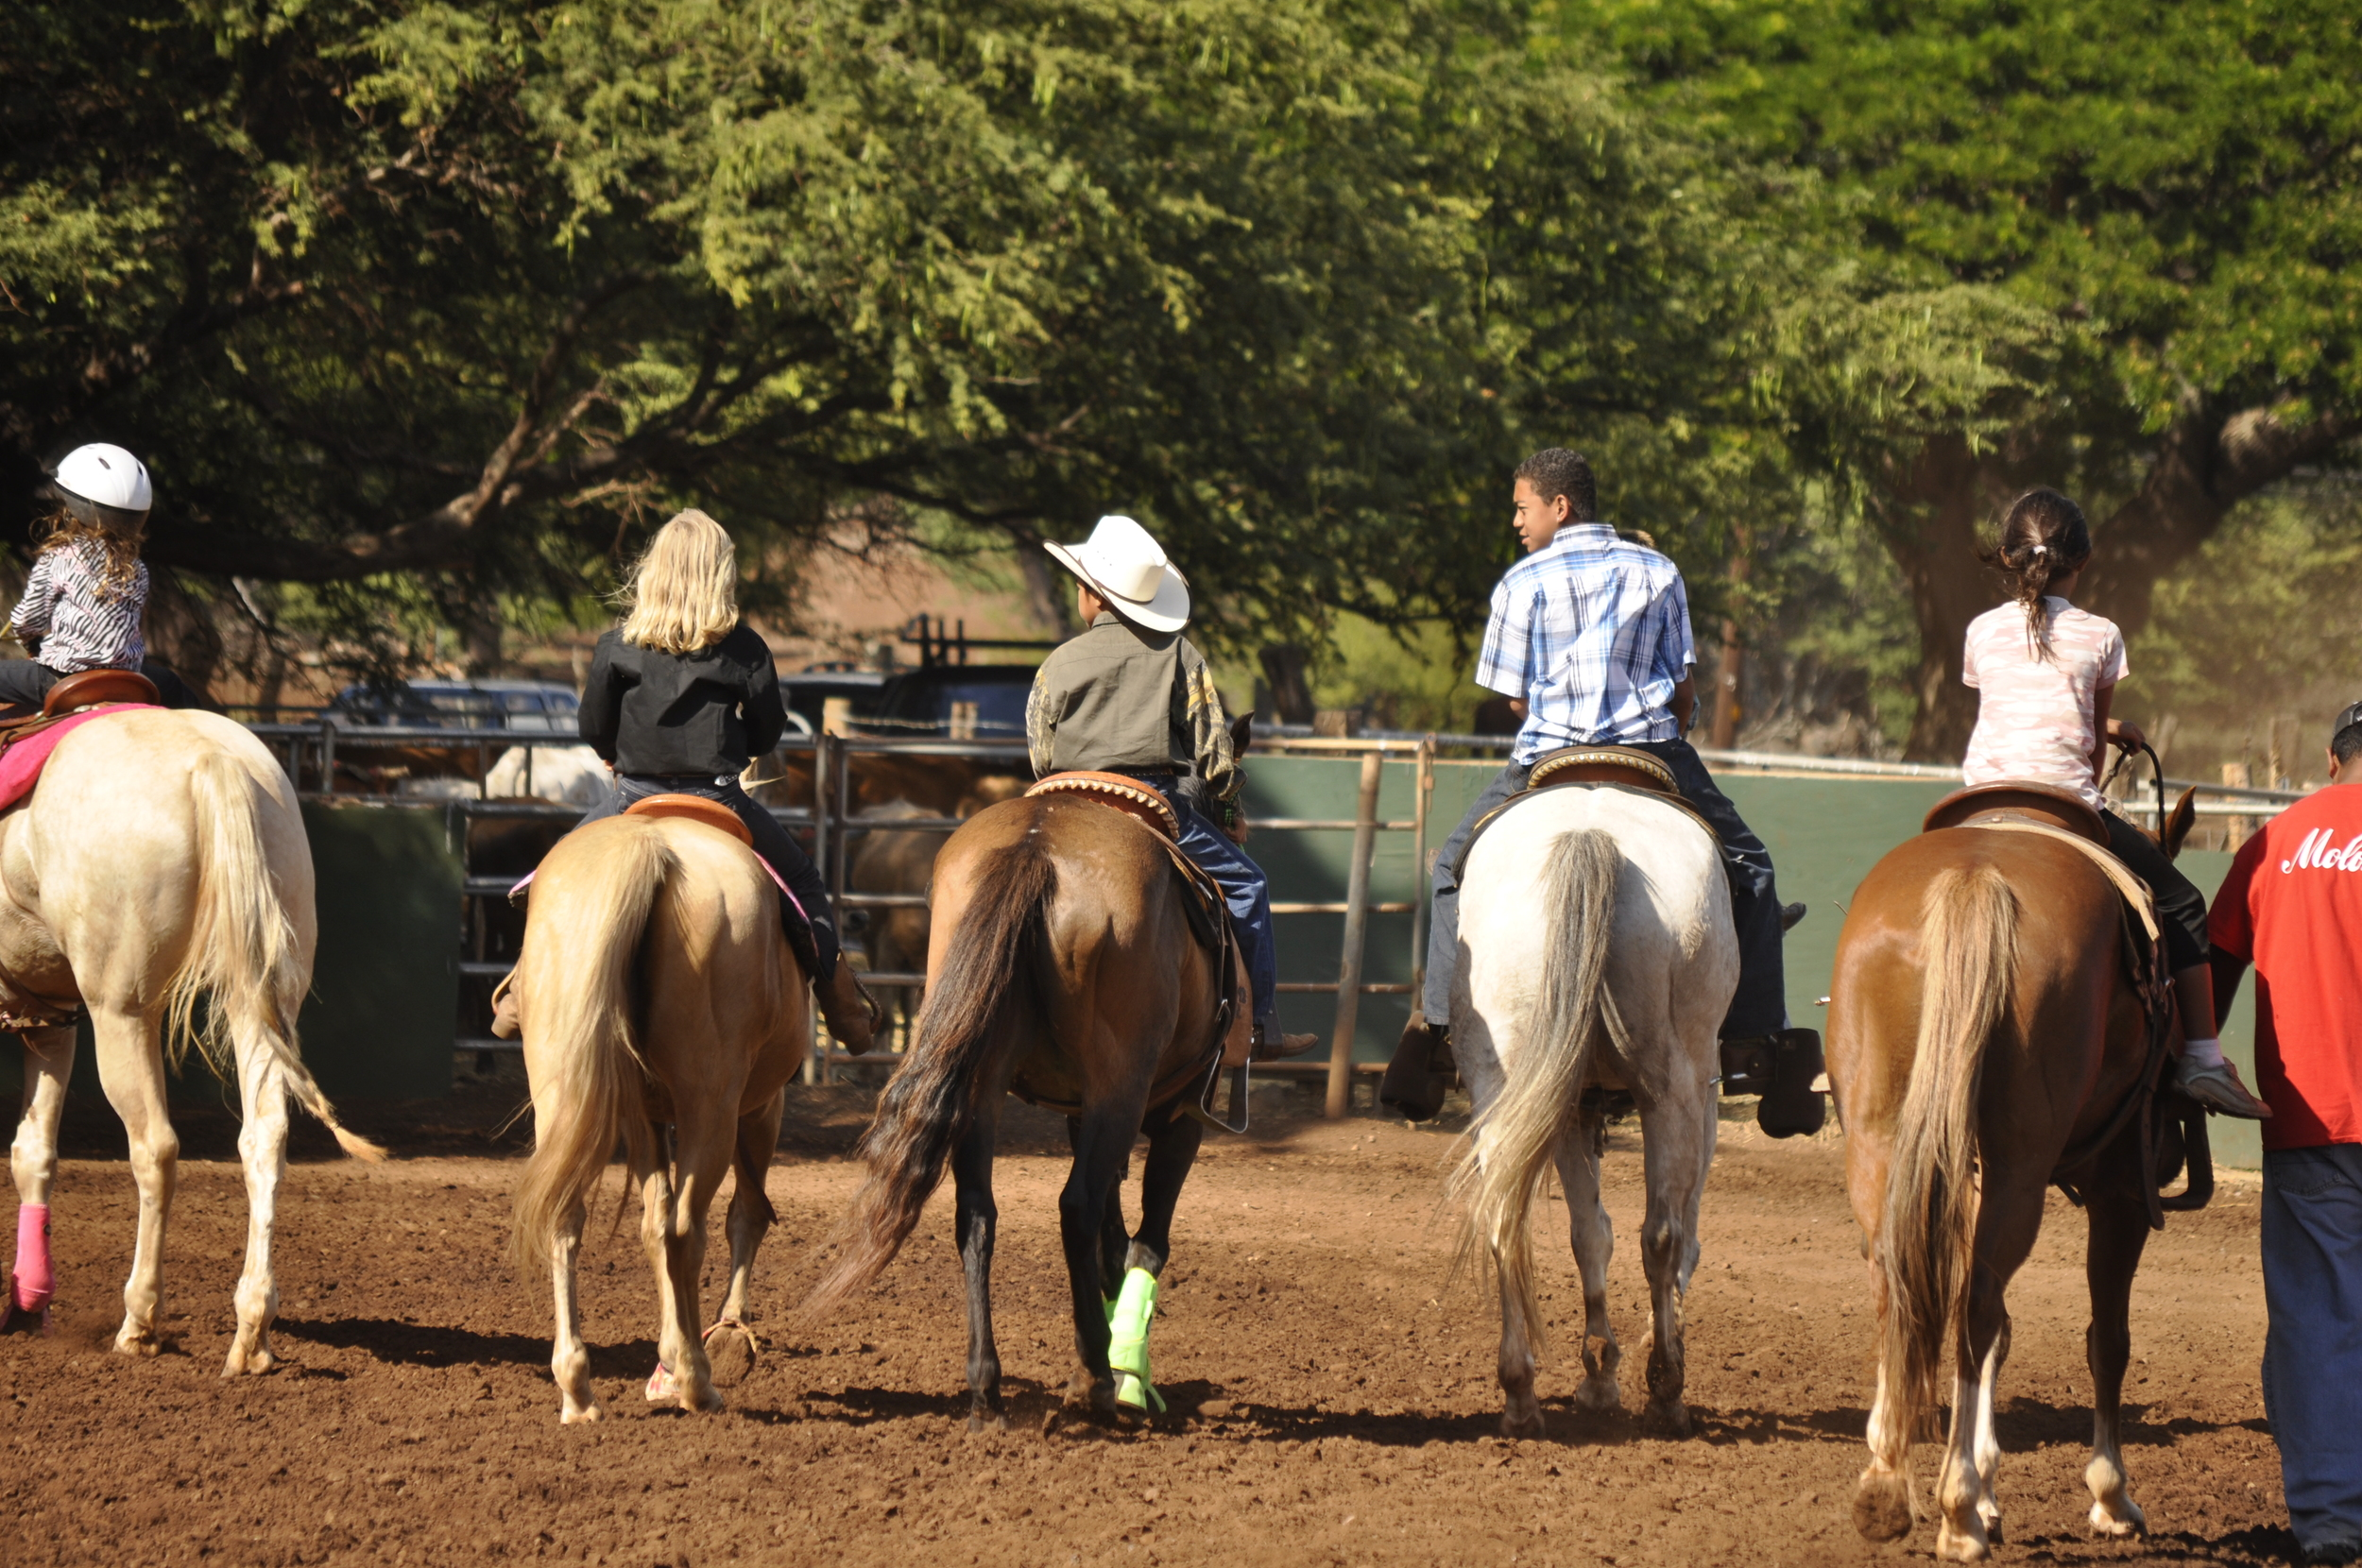 Young riders legging up their horses for barrel racing.